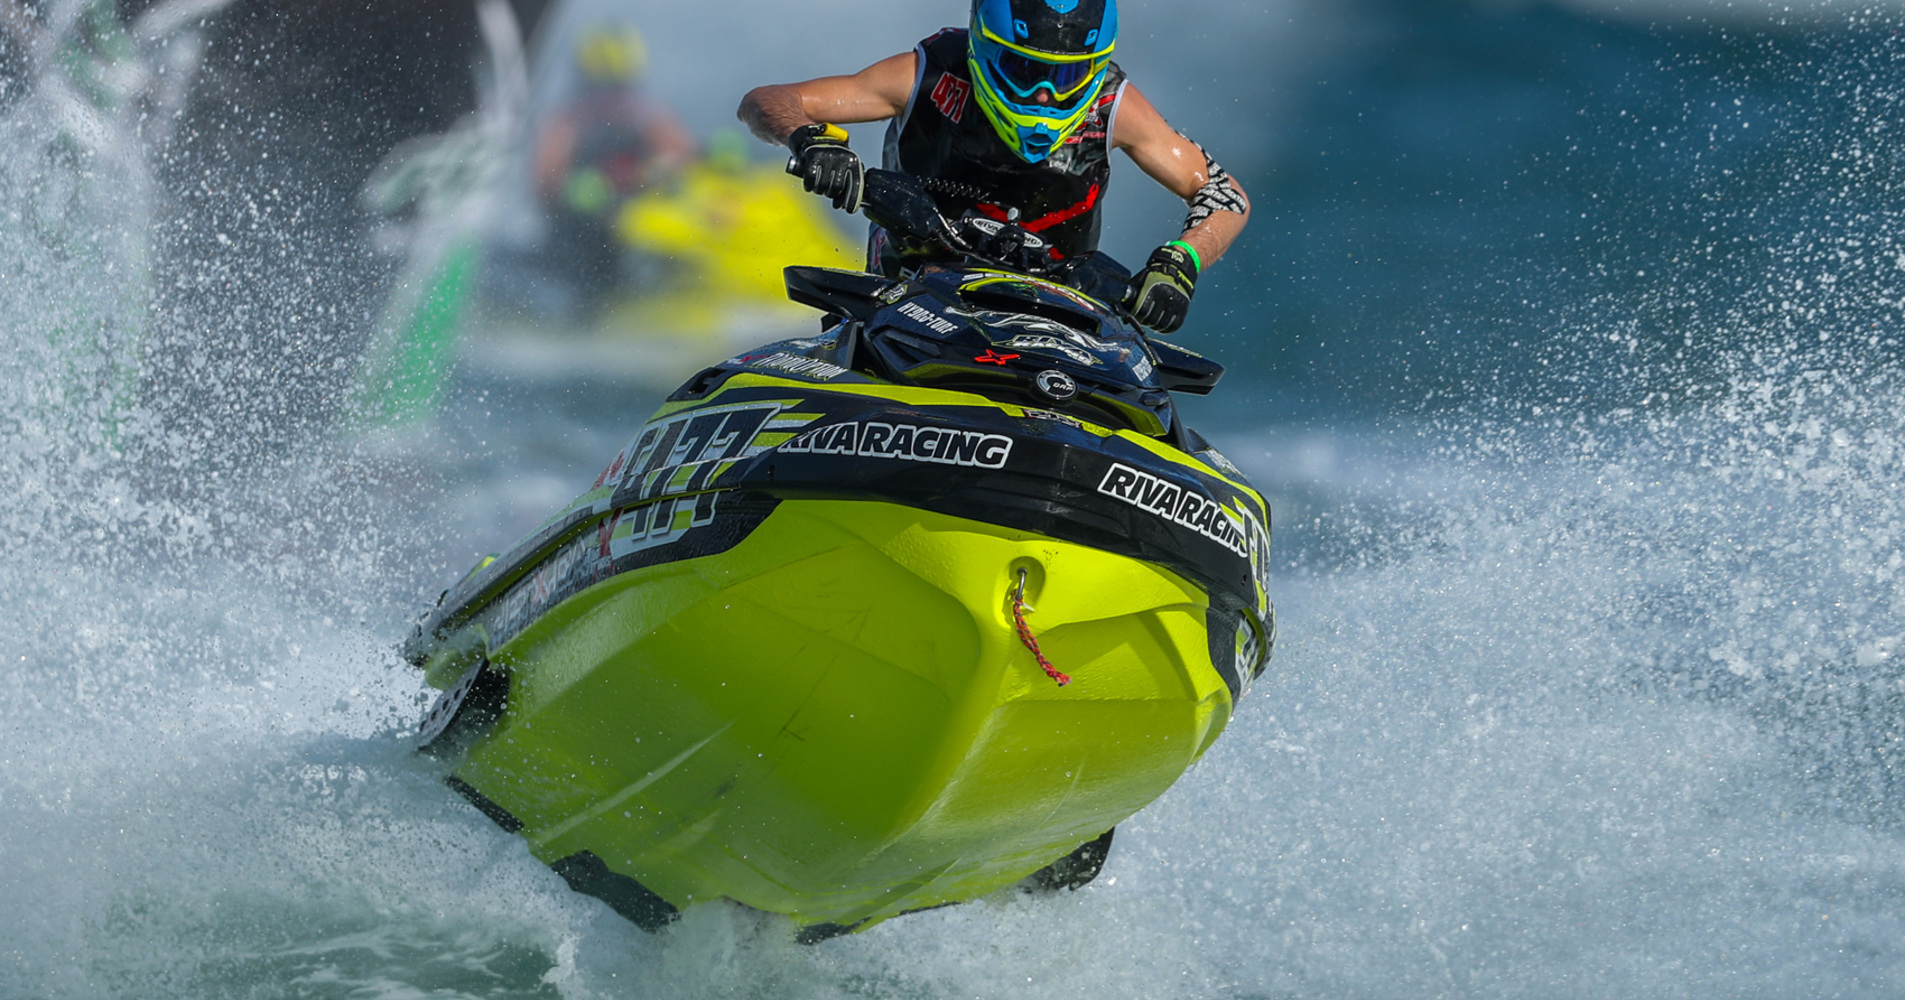 AquaX 2019 season is getting ready with 4 stops for the EuroTour, 3 rounds for the UK National and 5 rounds in the USA